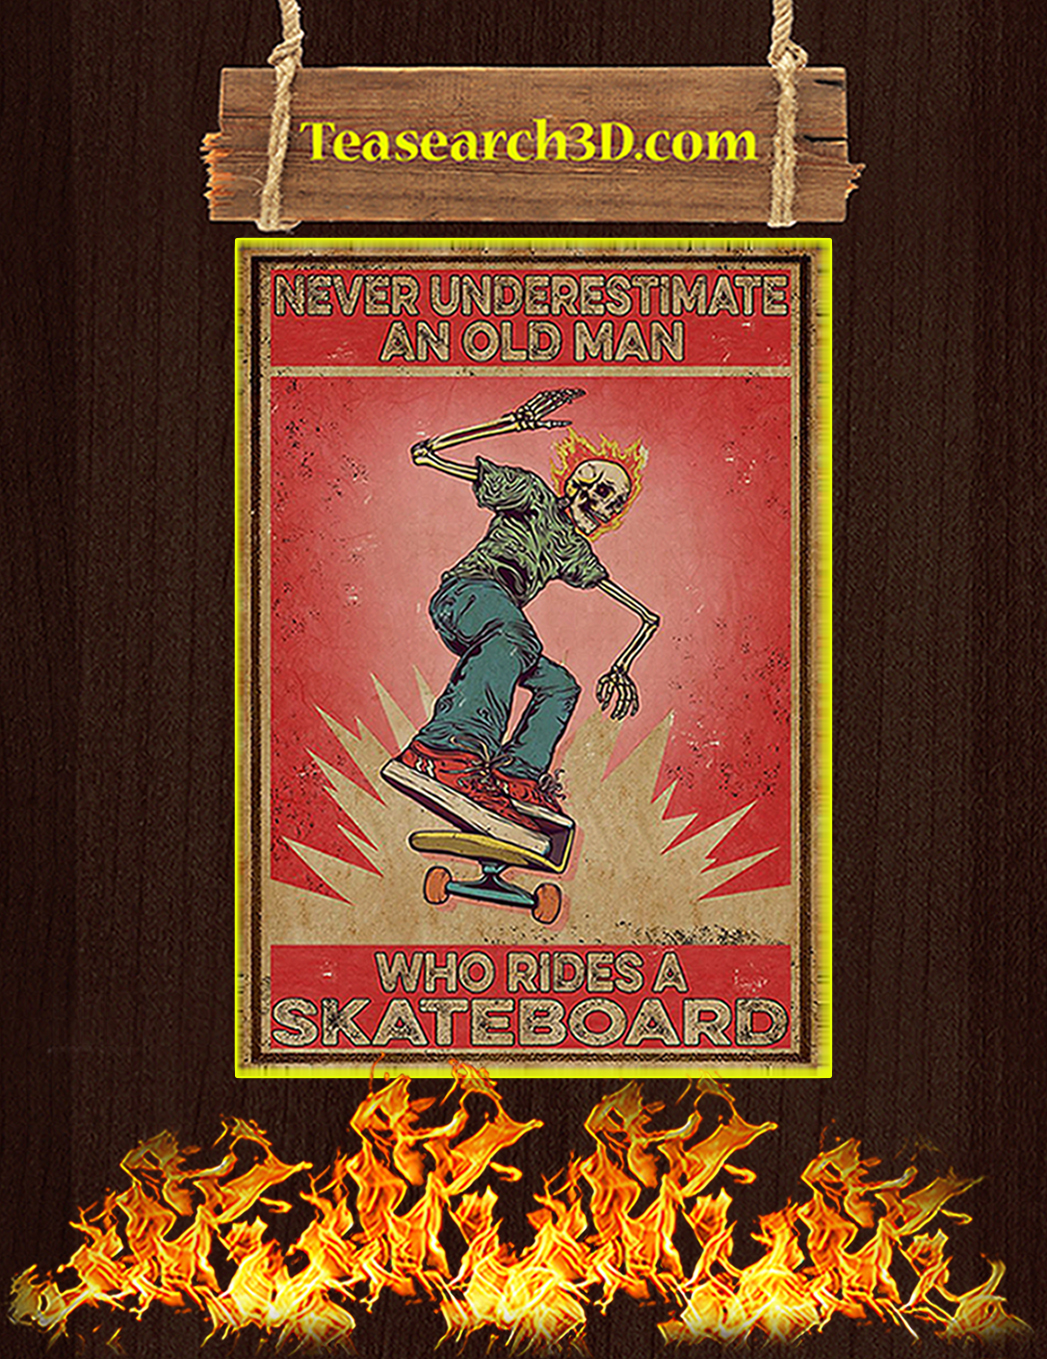 Never underestimate an old man who rides a skateboard poster A1